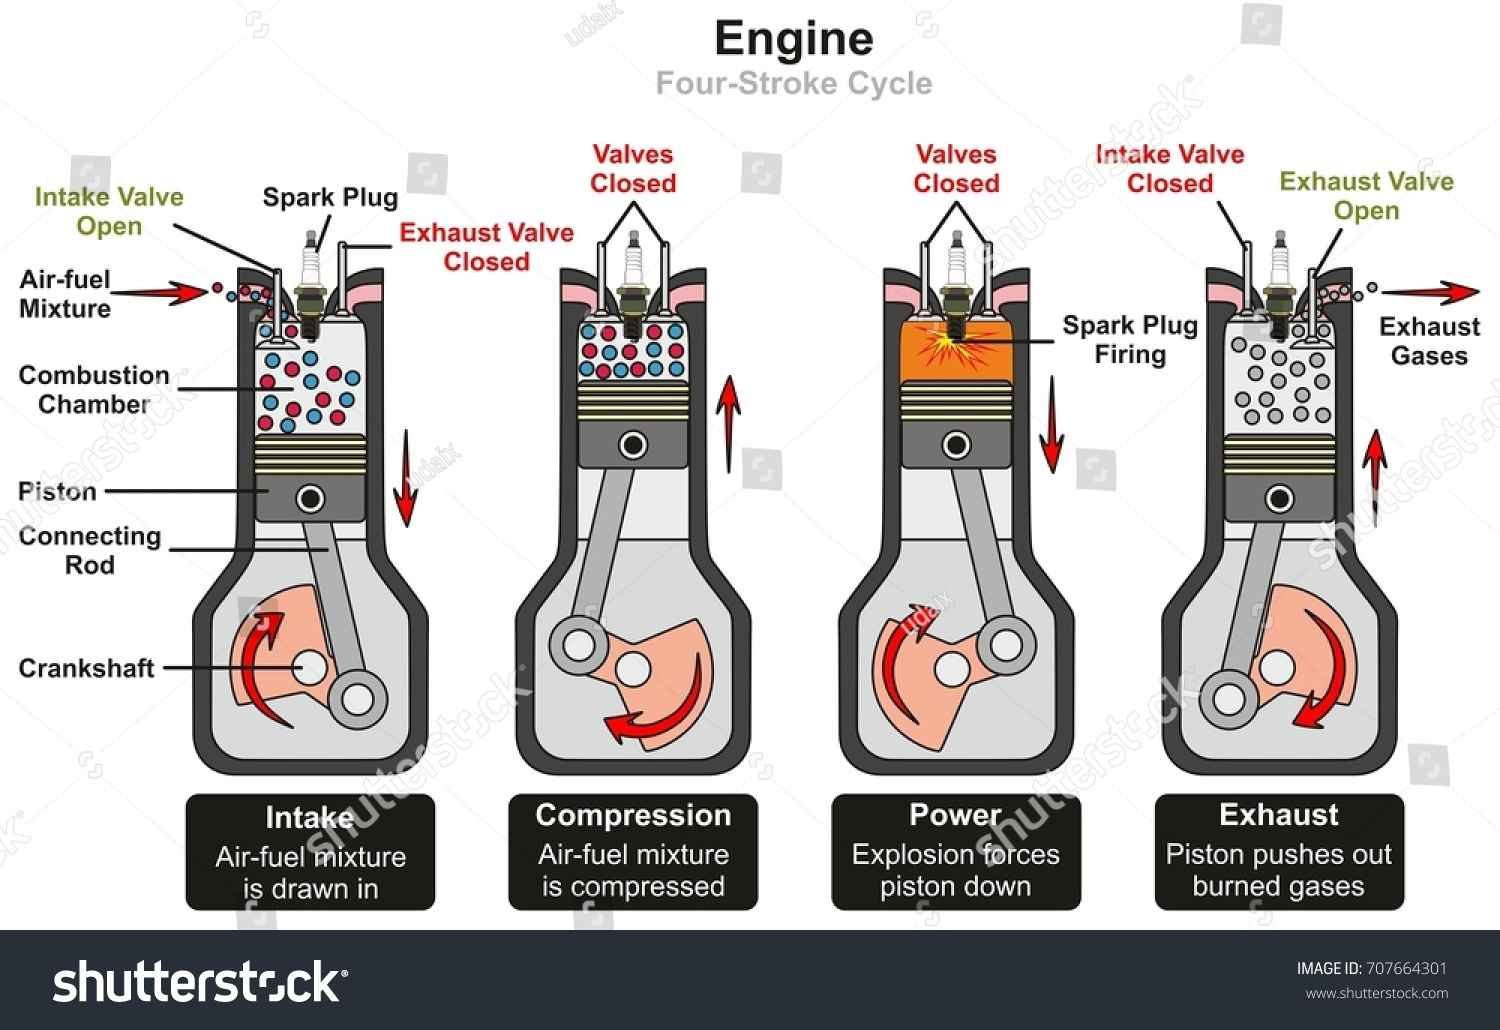 hight resolution of engine four stroke cycle infographic diagram including stages of intake compression power and exhaust showing parts